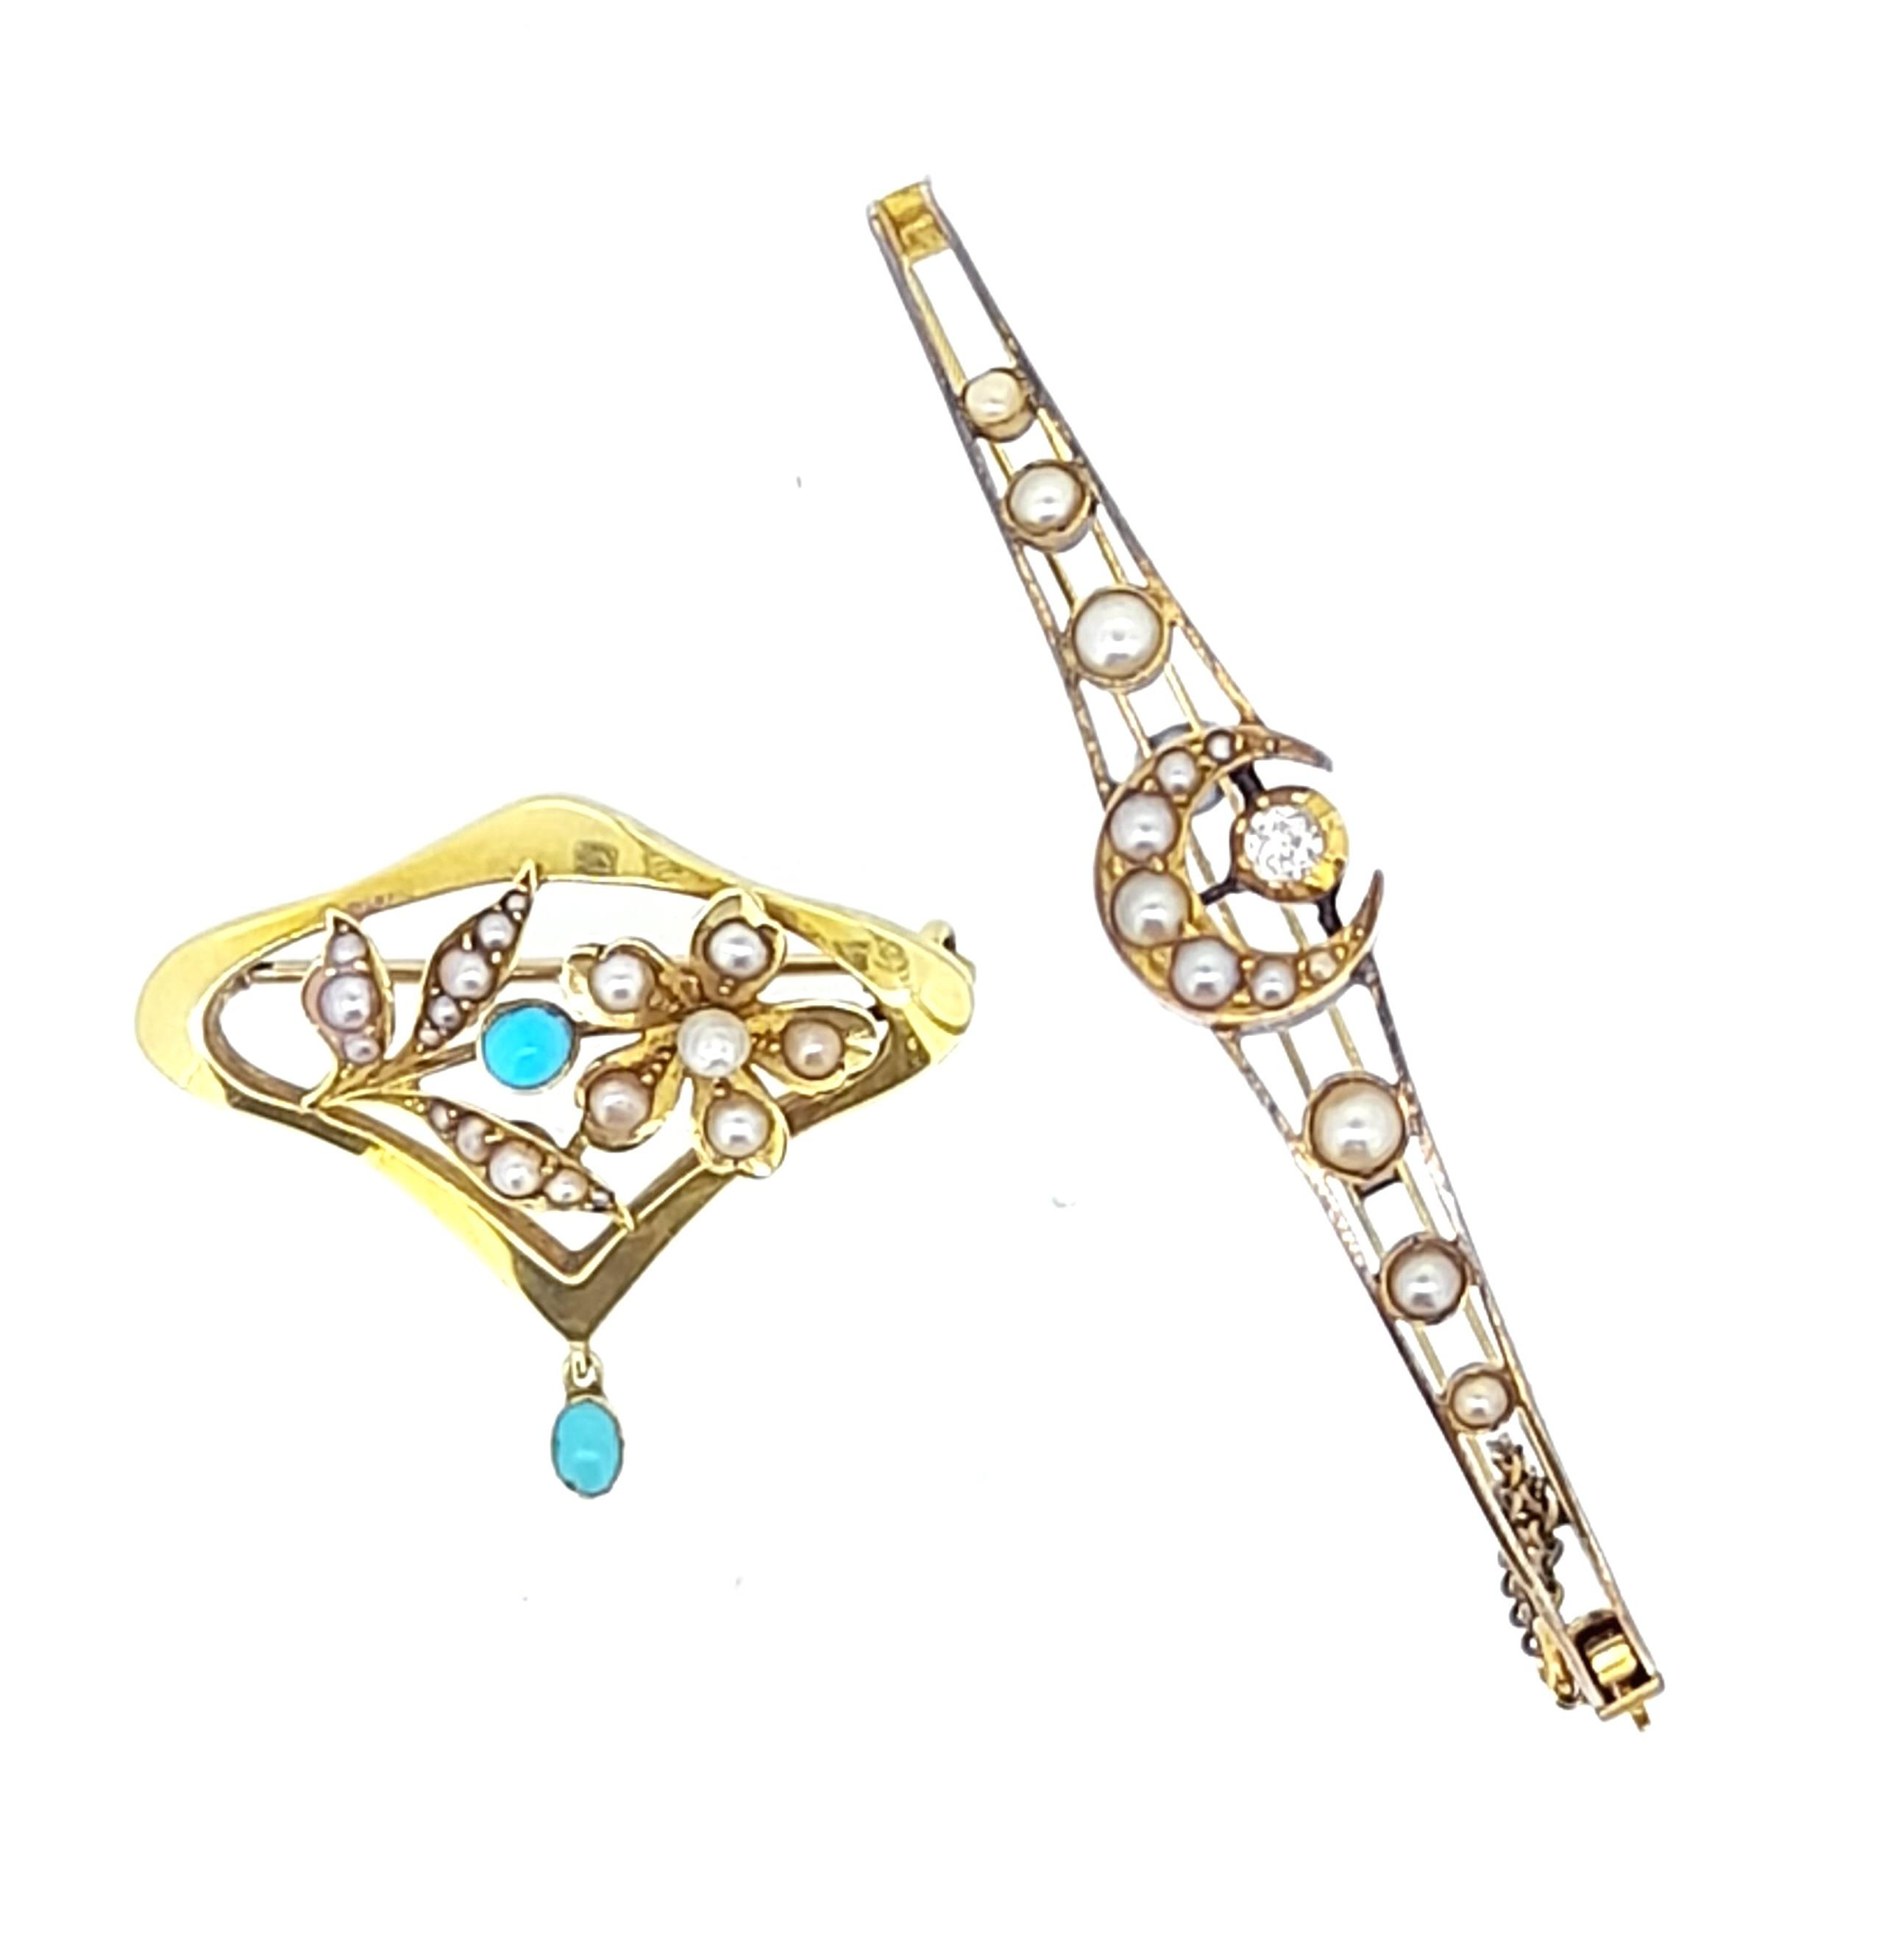 A pearl and diamond crescent bangle and a pearl and turquoise Art Nouveau brooch,